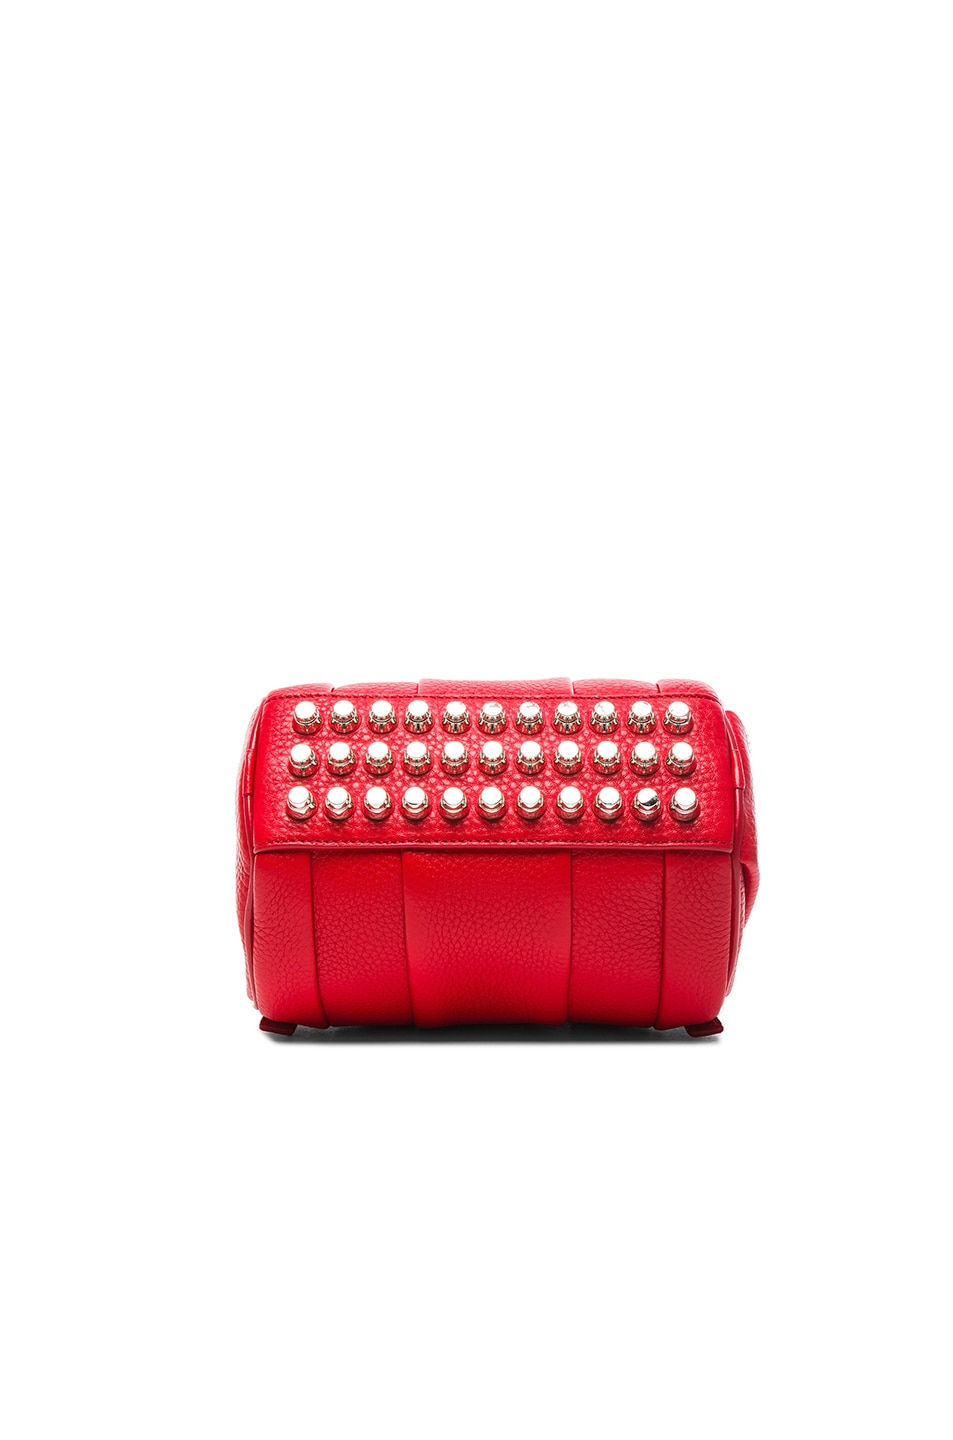 Image 7 of Alexander Wang Mini Rockie Bag with Silver Hardware in Cult